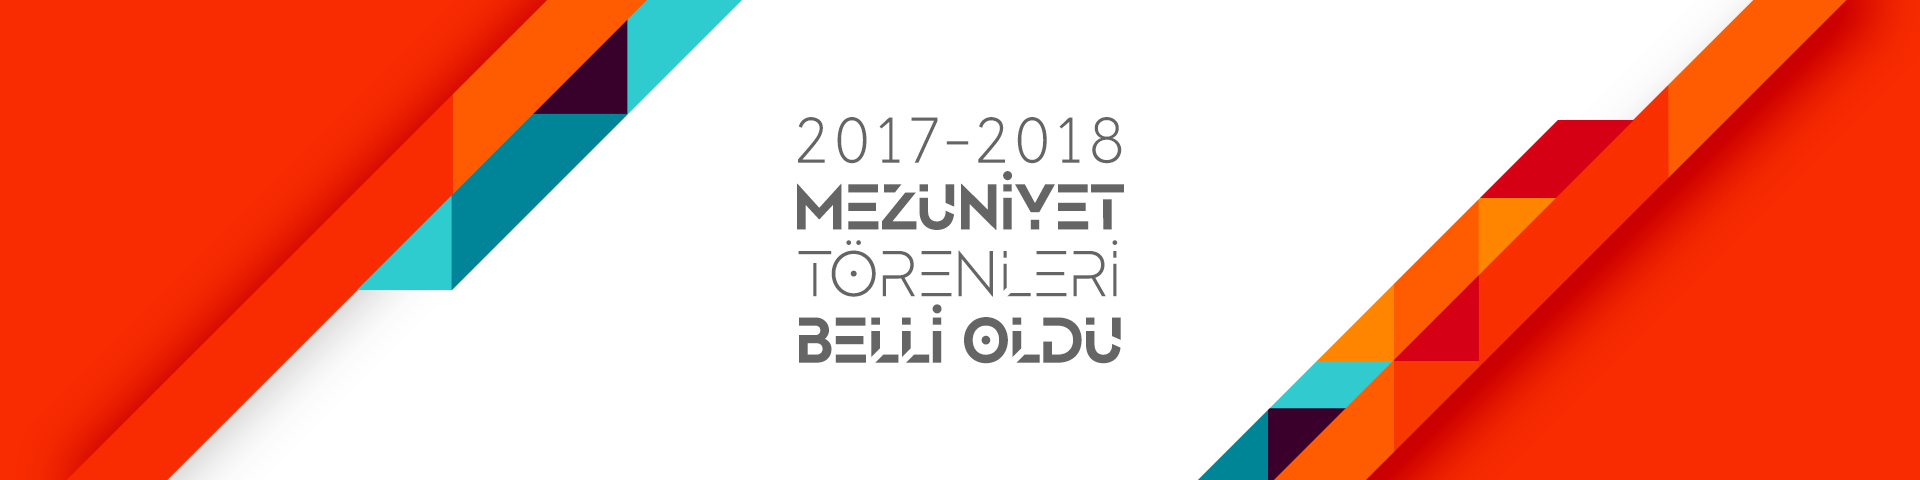 http://www.omu.edu.tr/sites/default/files/files/2017_-_2018_graduation_ceremonies_schedule_/2018mezuniyettorenleri-sliderr.jpg